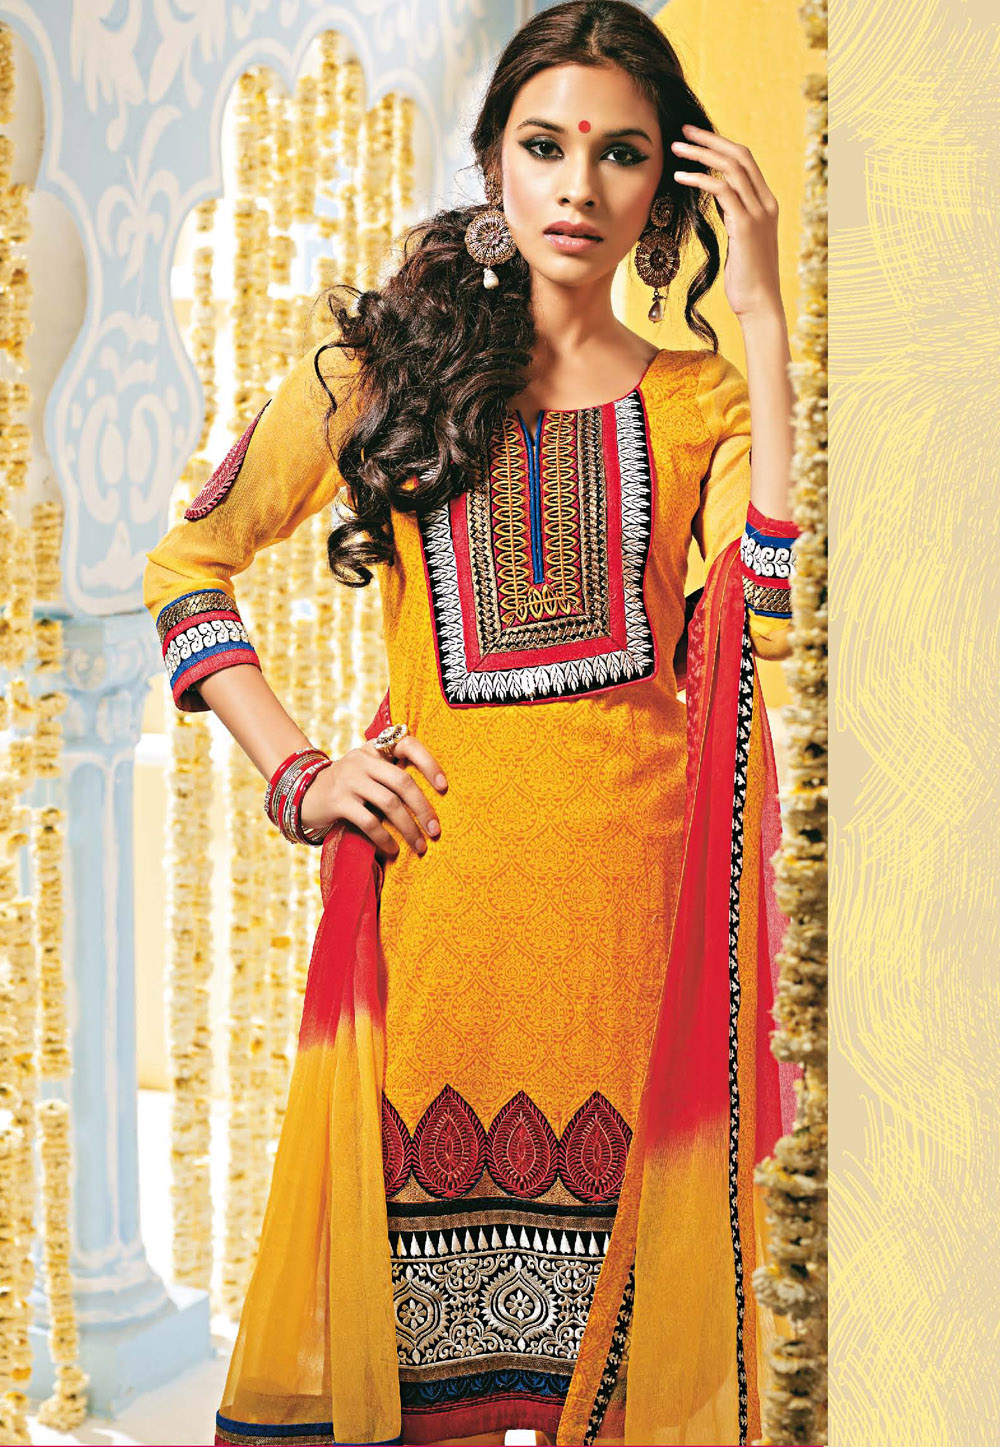 A Yellow Cotton Kameez. (Image: Utsavfashion.com)